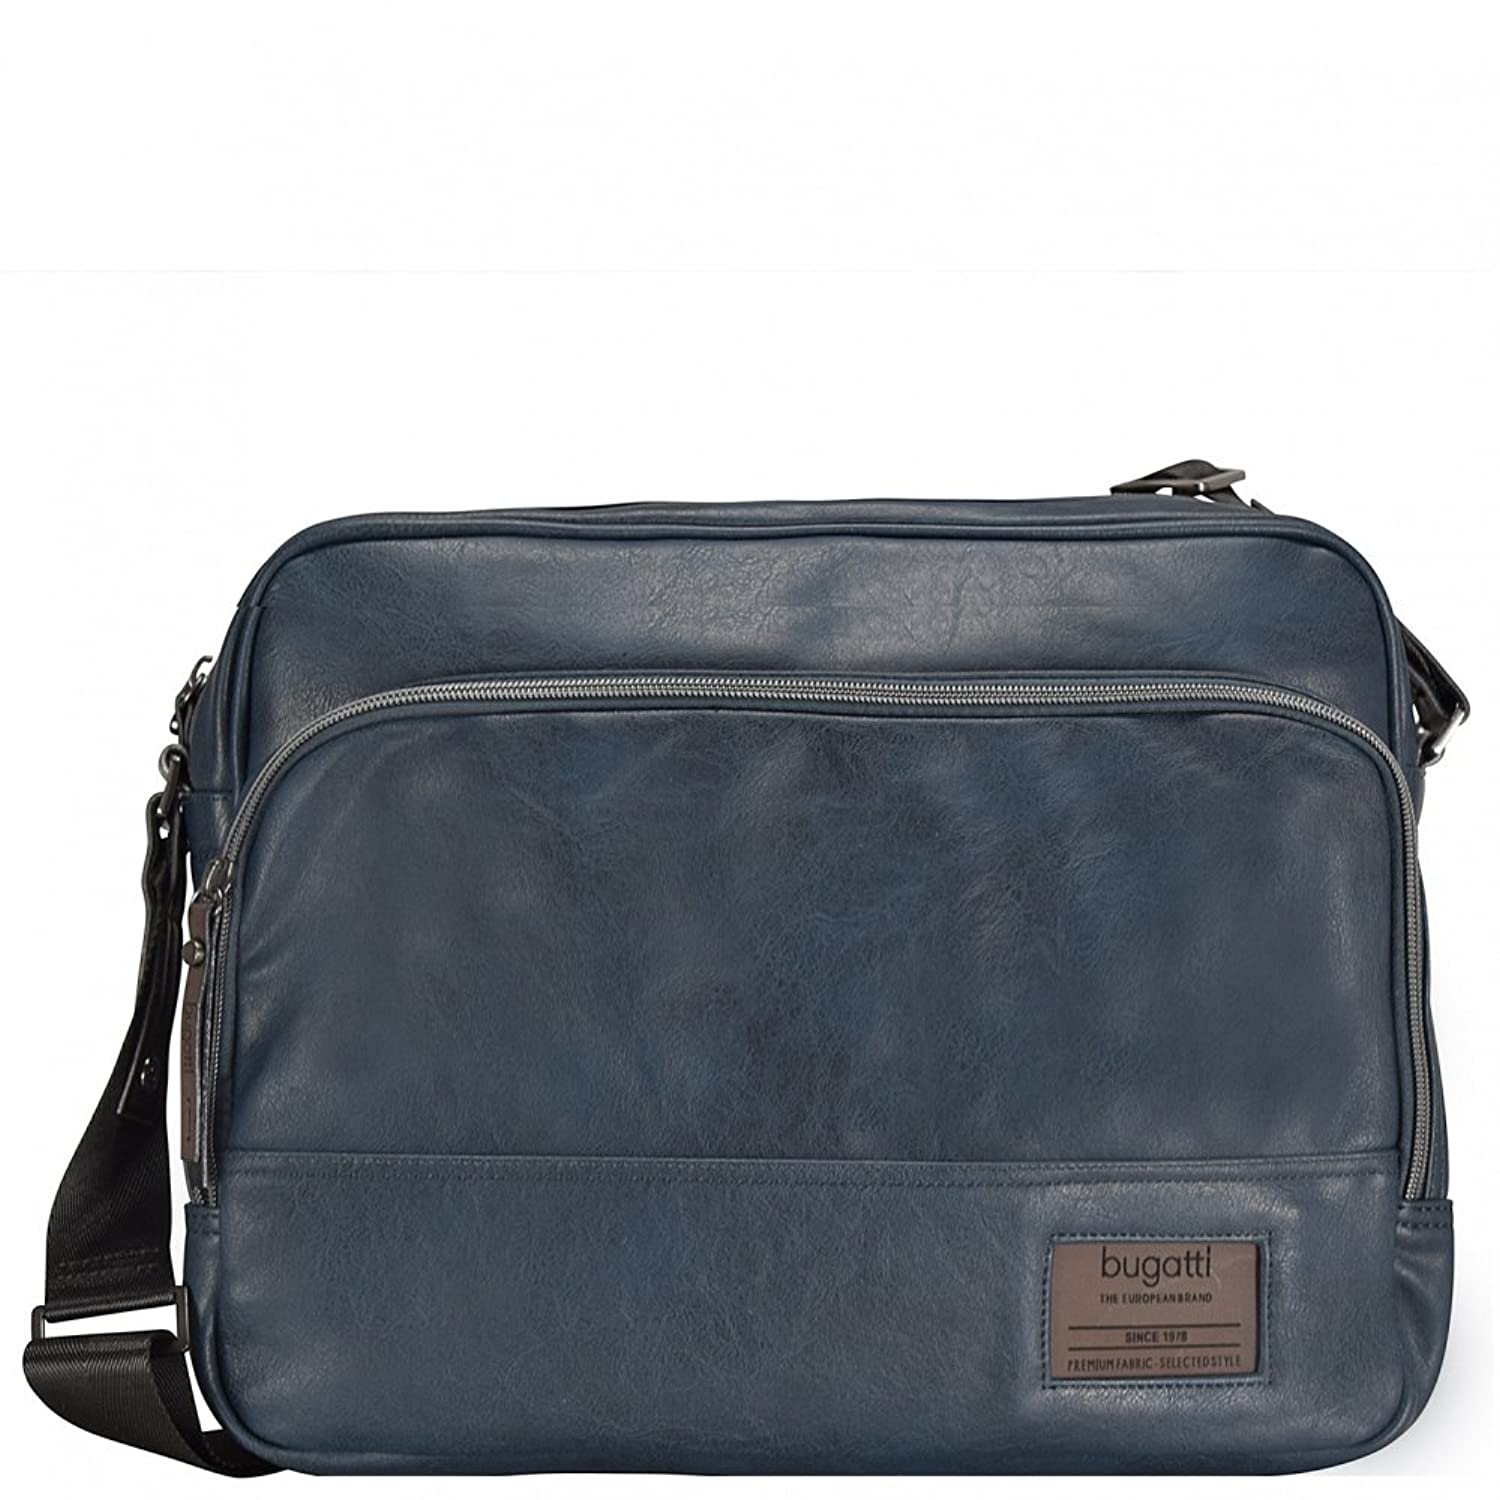 bugatti Moto D Shoulder Bag 38 cm Notebook Compartment